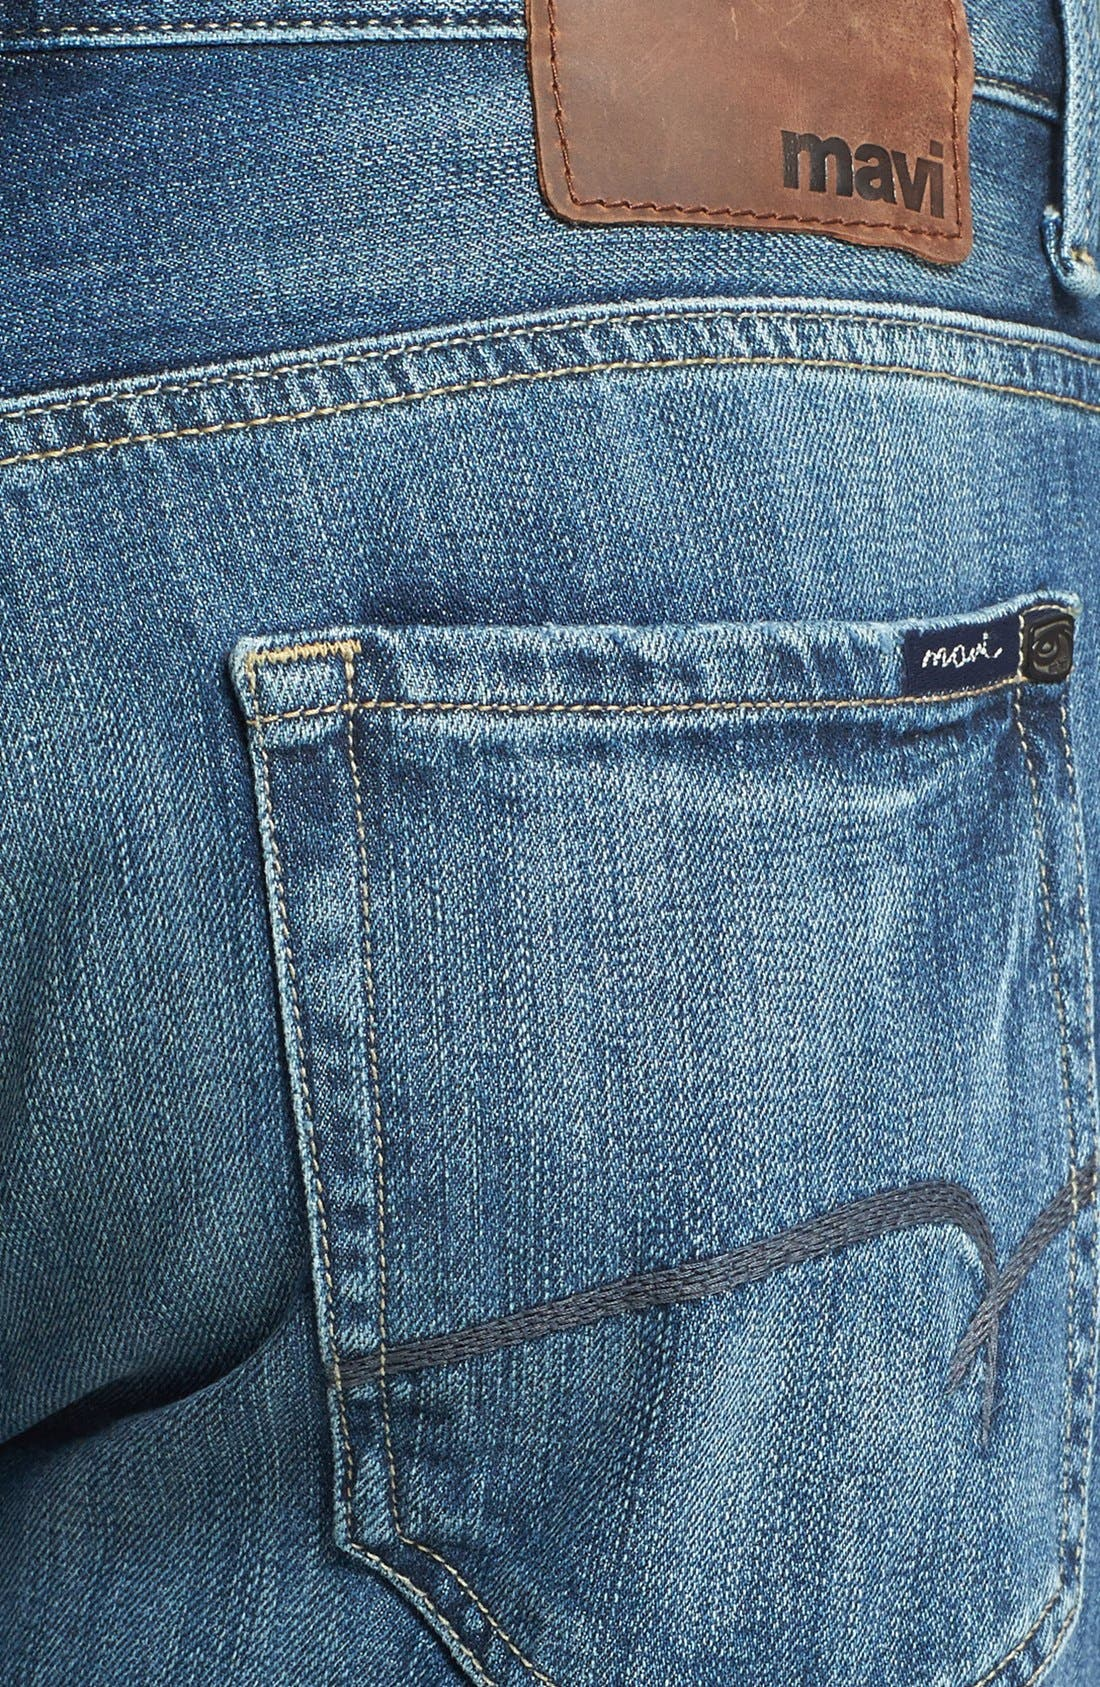 Alternate Image 4  - Mavi Jeans 'Matt' Relaxed Straight Leg Jeans (Indigo Blue) (Online Only)